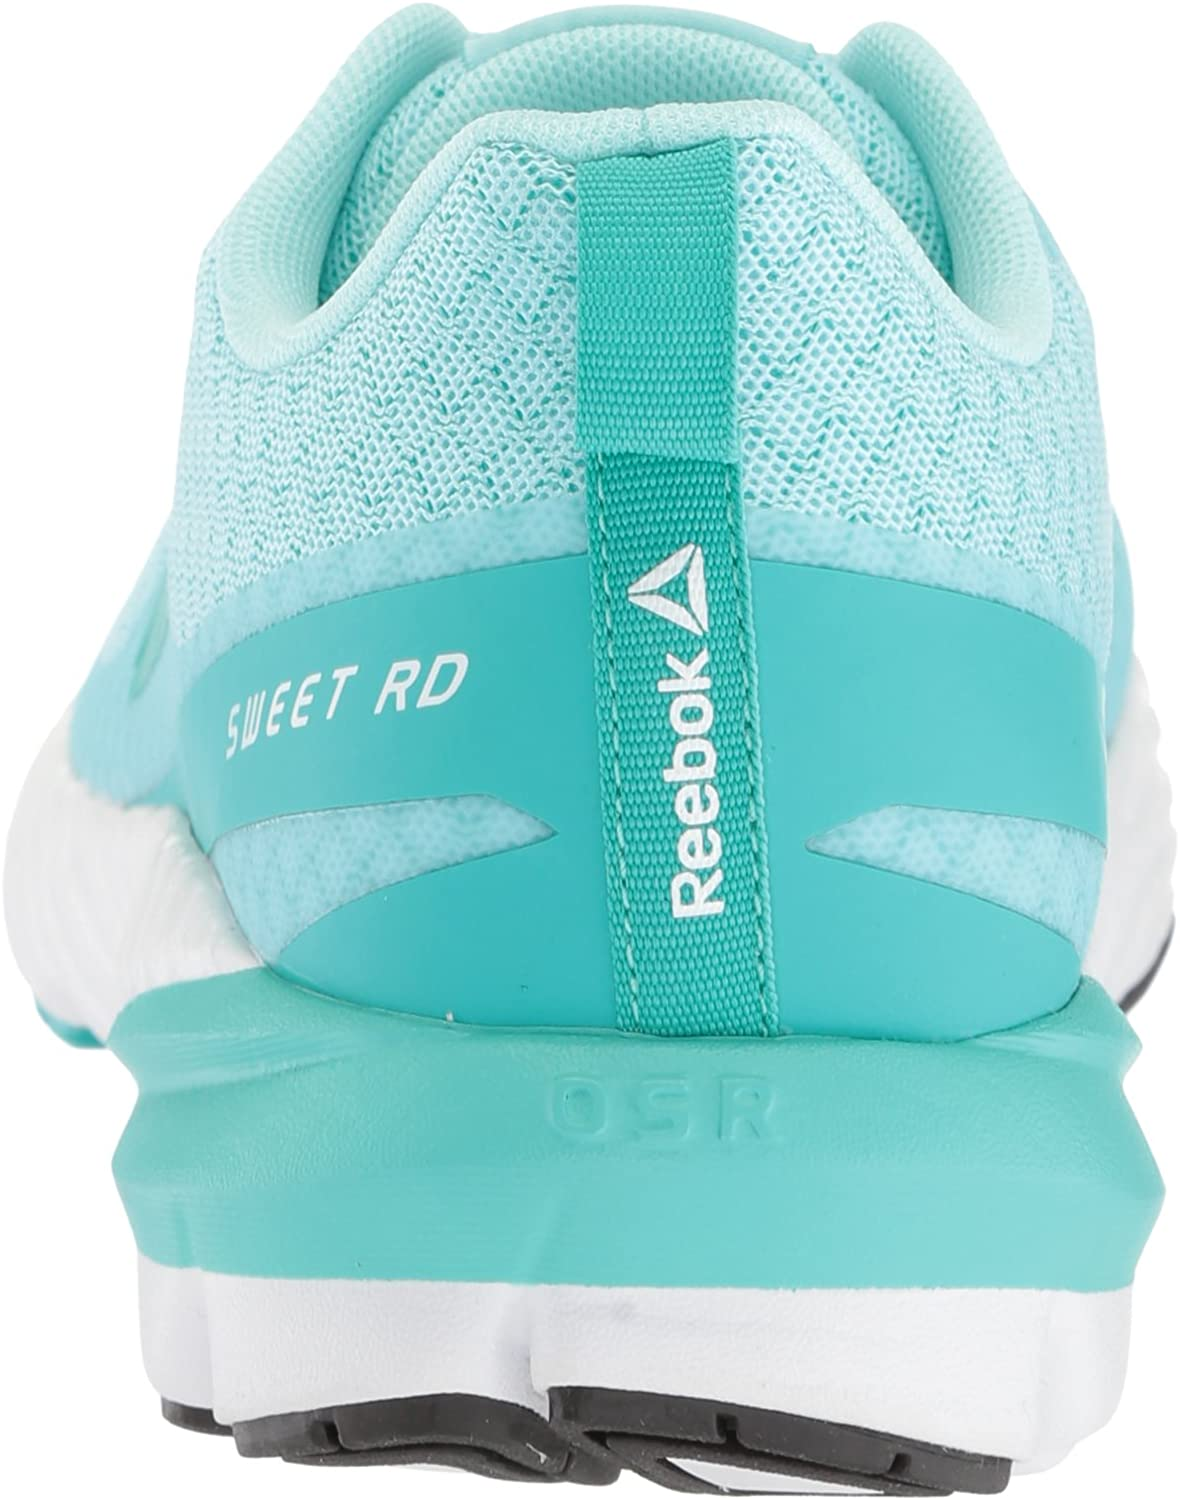 Reebok Femmes Chaussures Athlétiques Blue Lagoon Solid Teal White Coal